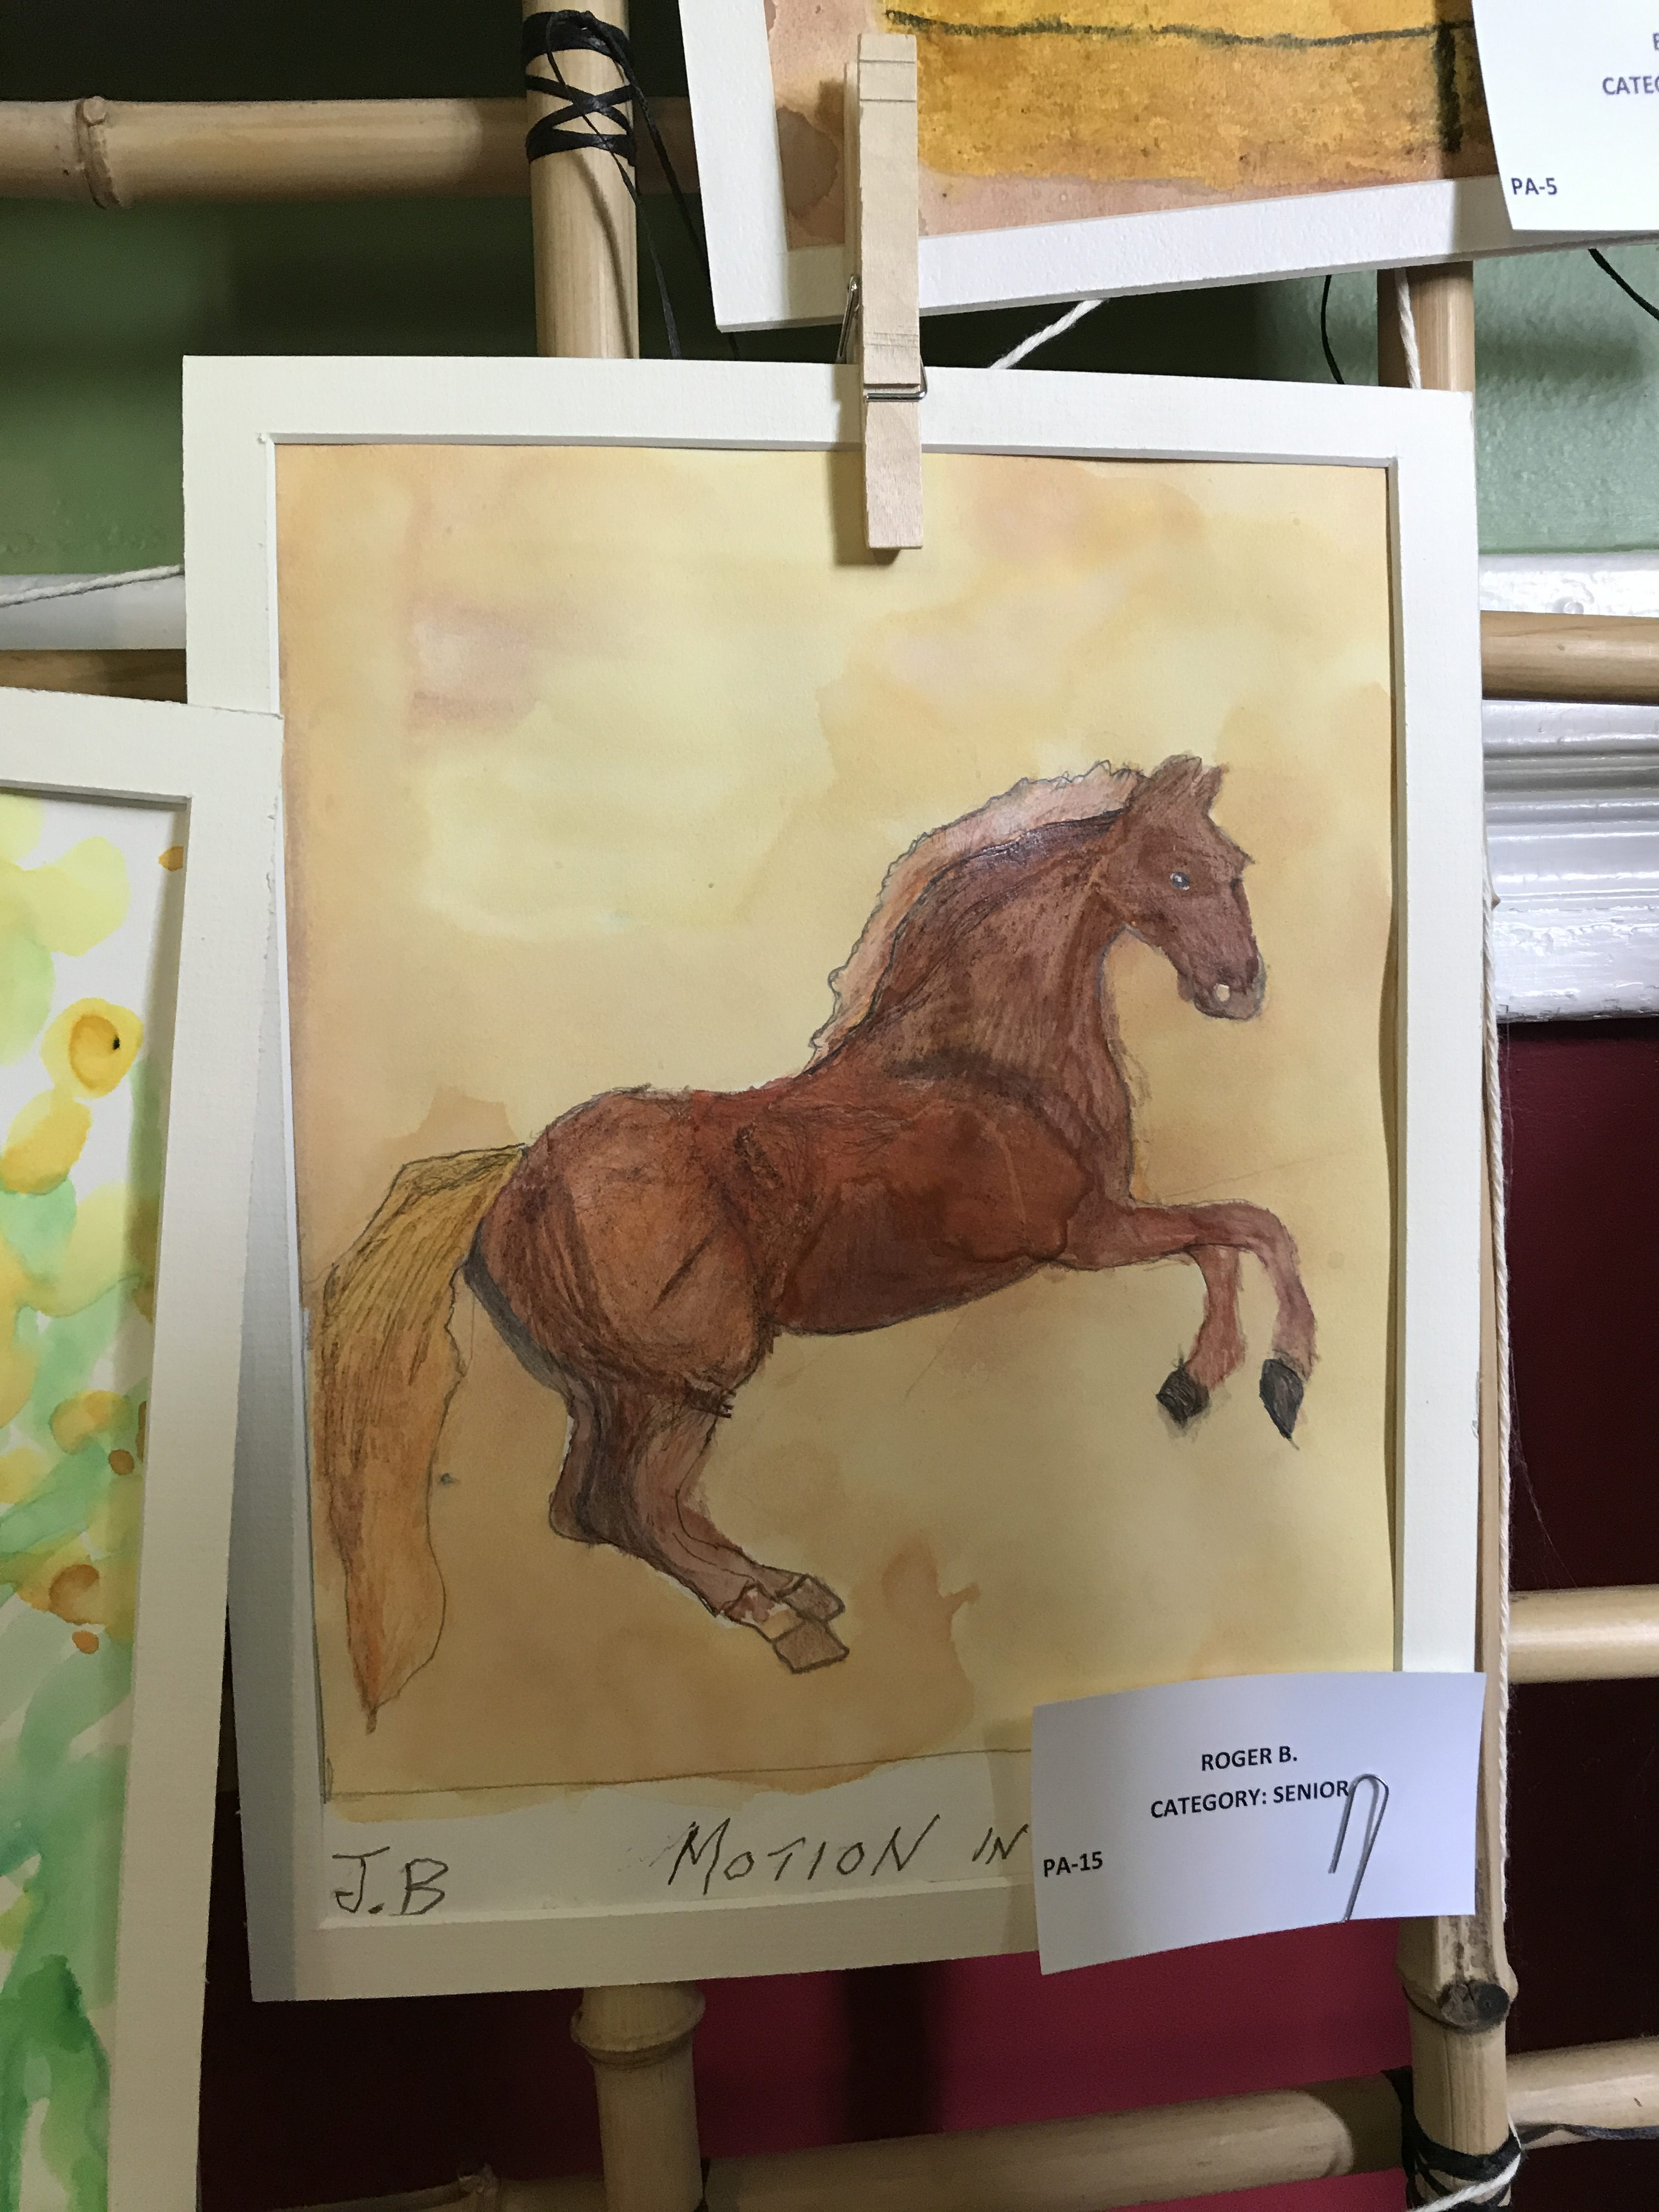 watercolor of horse in motion by roger